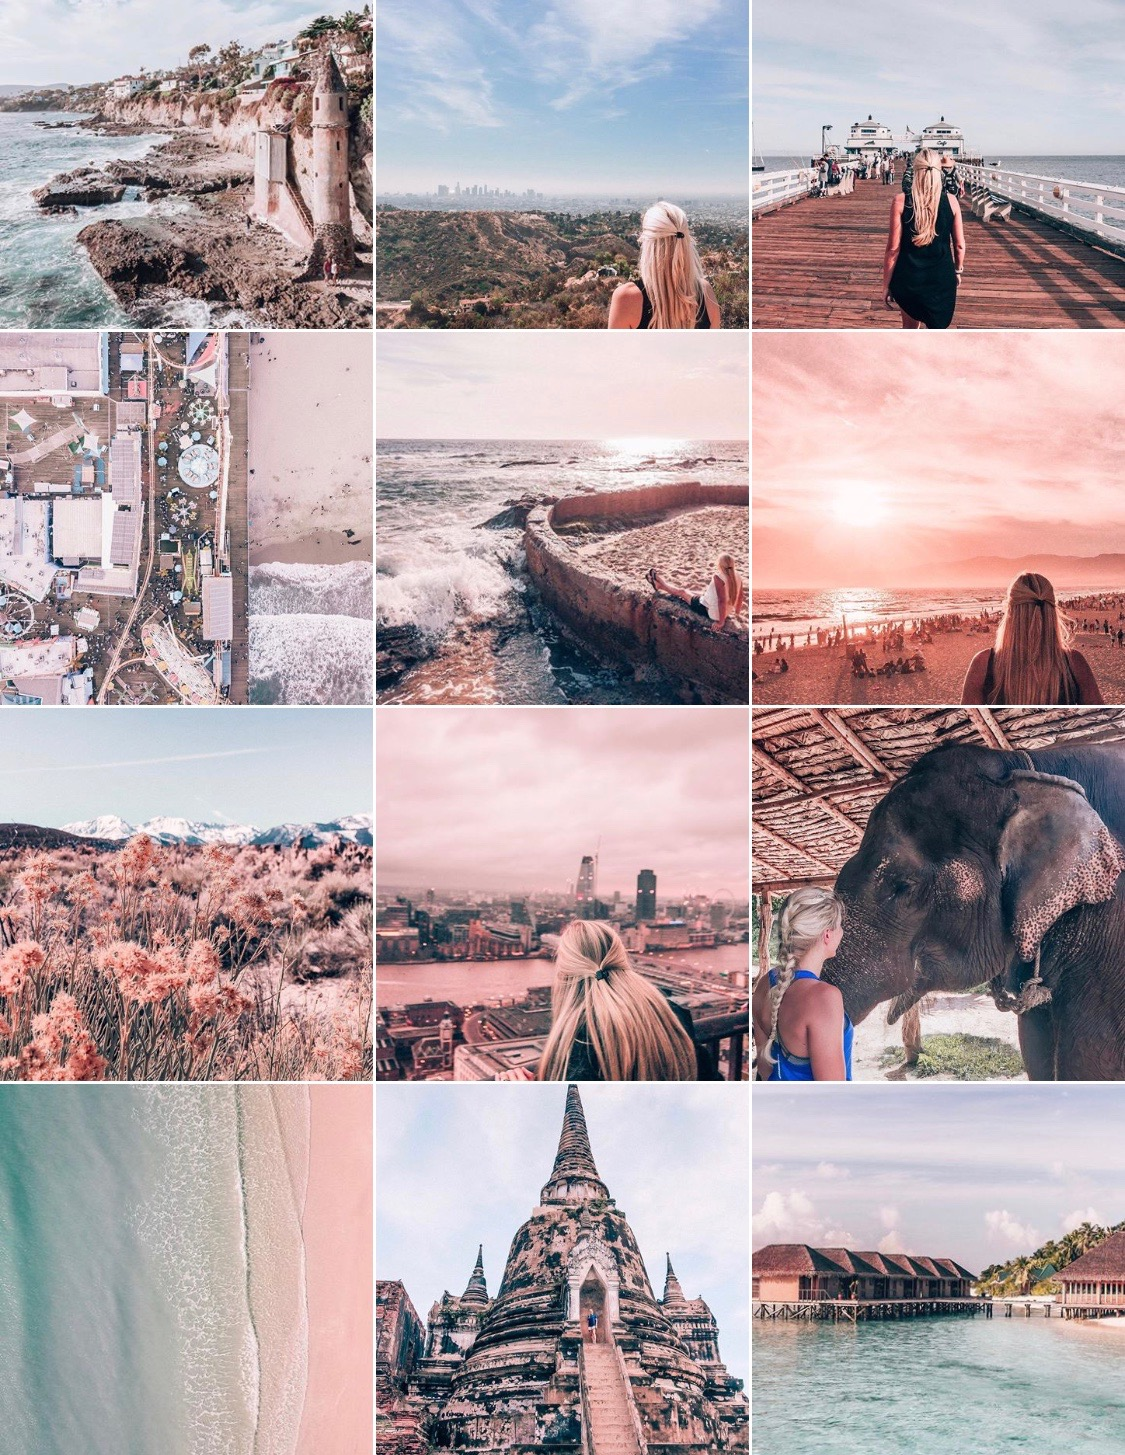 My Instagram feed after edits in Lightroom to make my feed cohesive. See how to grow your Instagram authentically on my blog post!